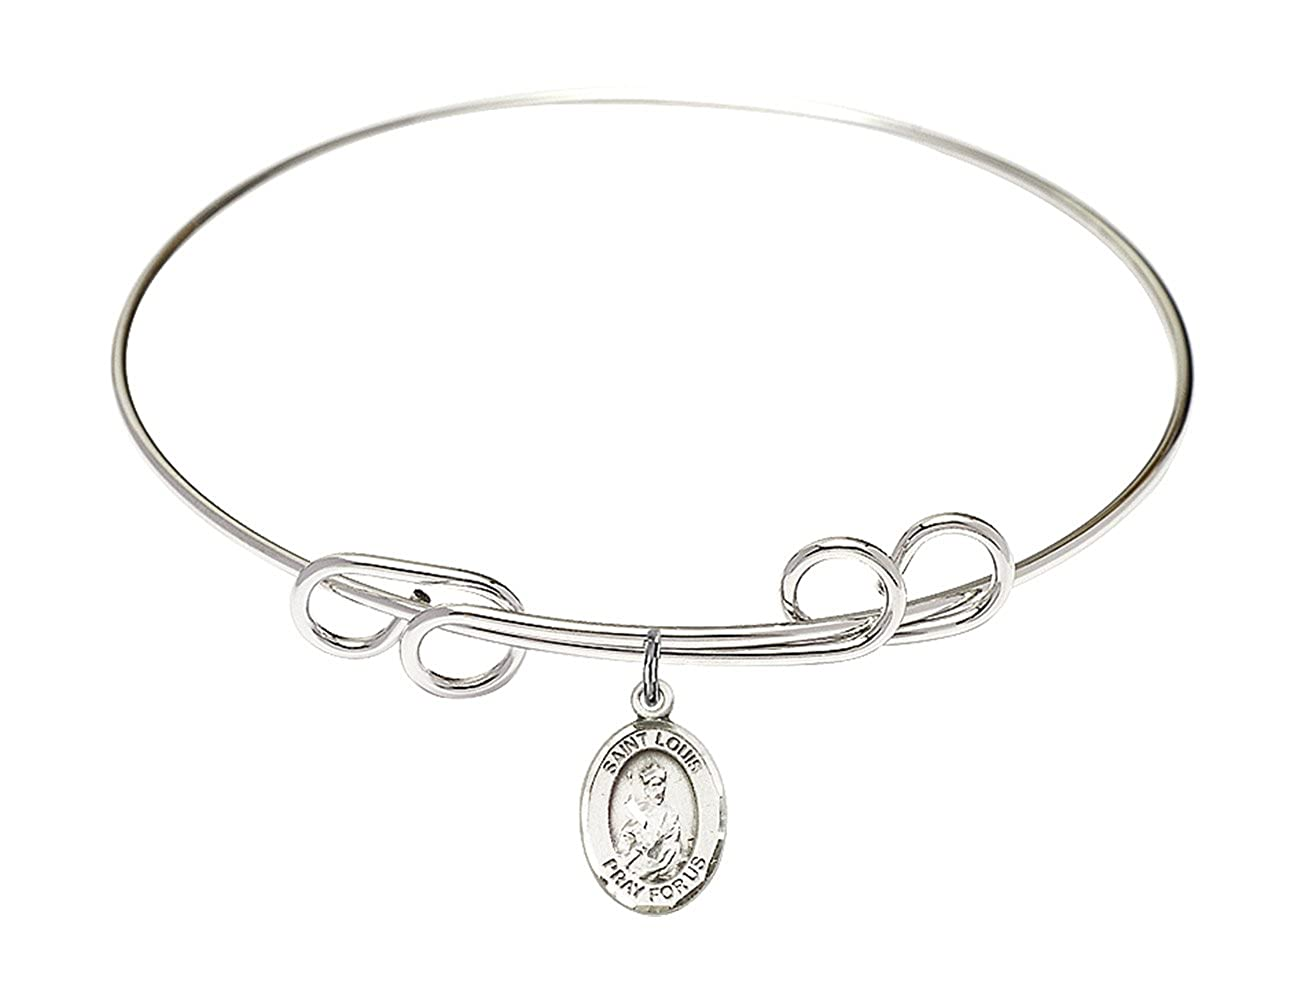 DiamondJewelryNY Double Loop Bangle Bracelet with a St Louis Charm.